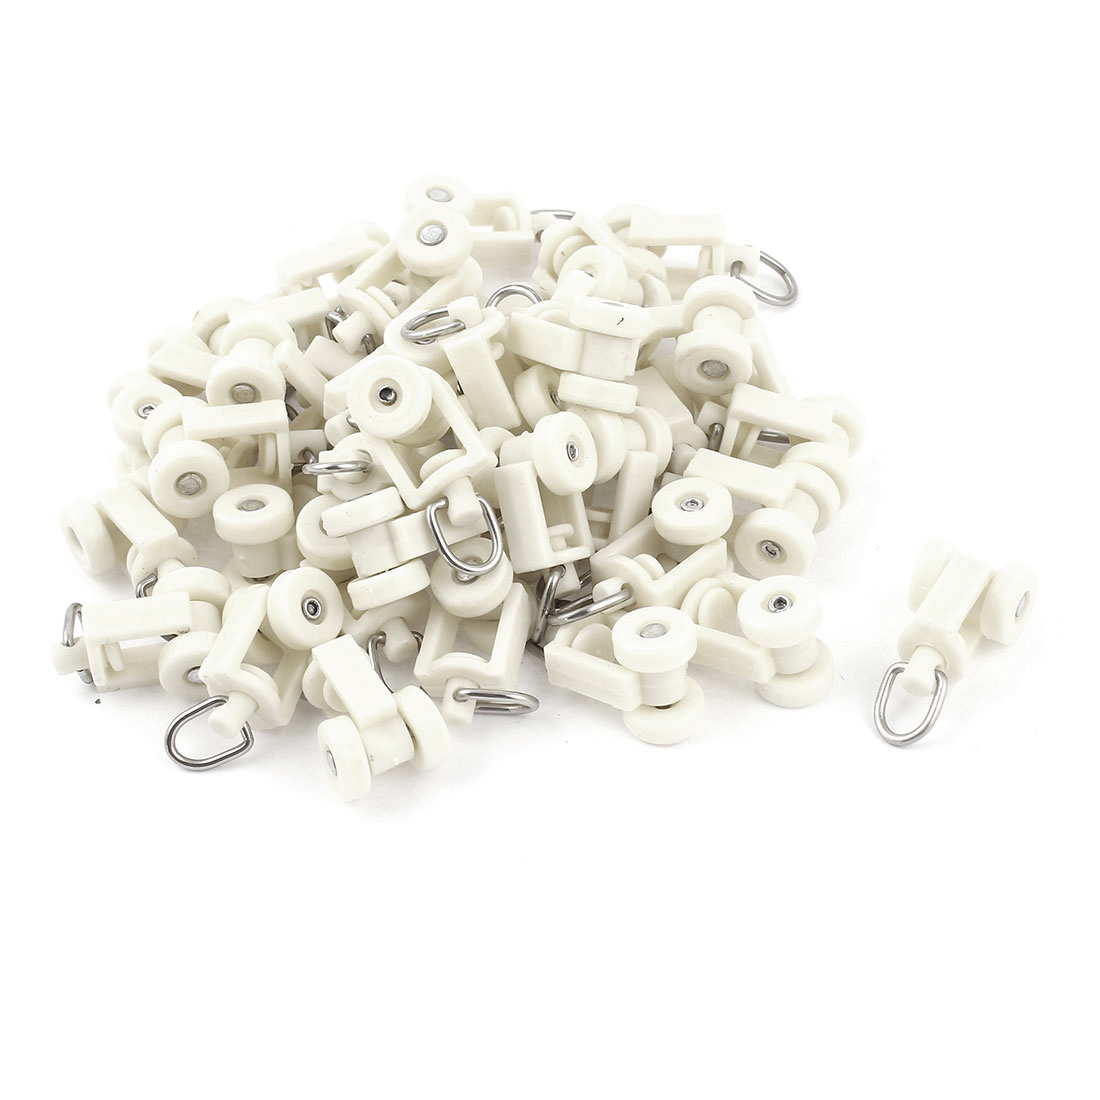 White Plastic Curtain Track Rail Rollers 12mm Diameter Wheel 40 Pcs